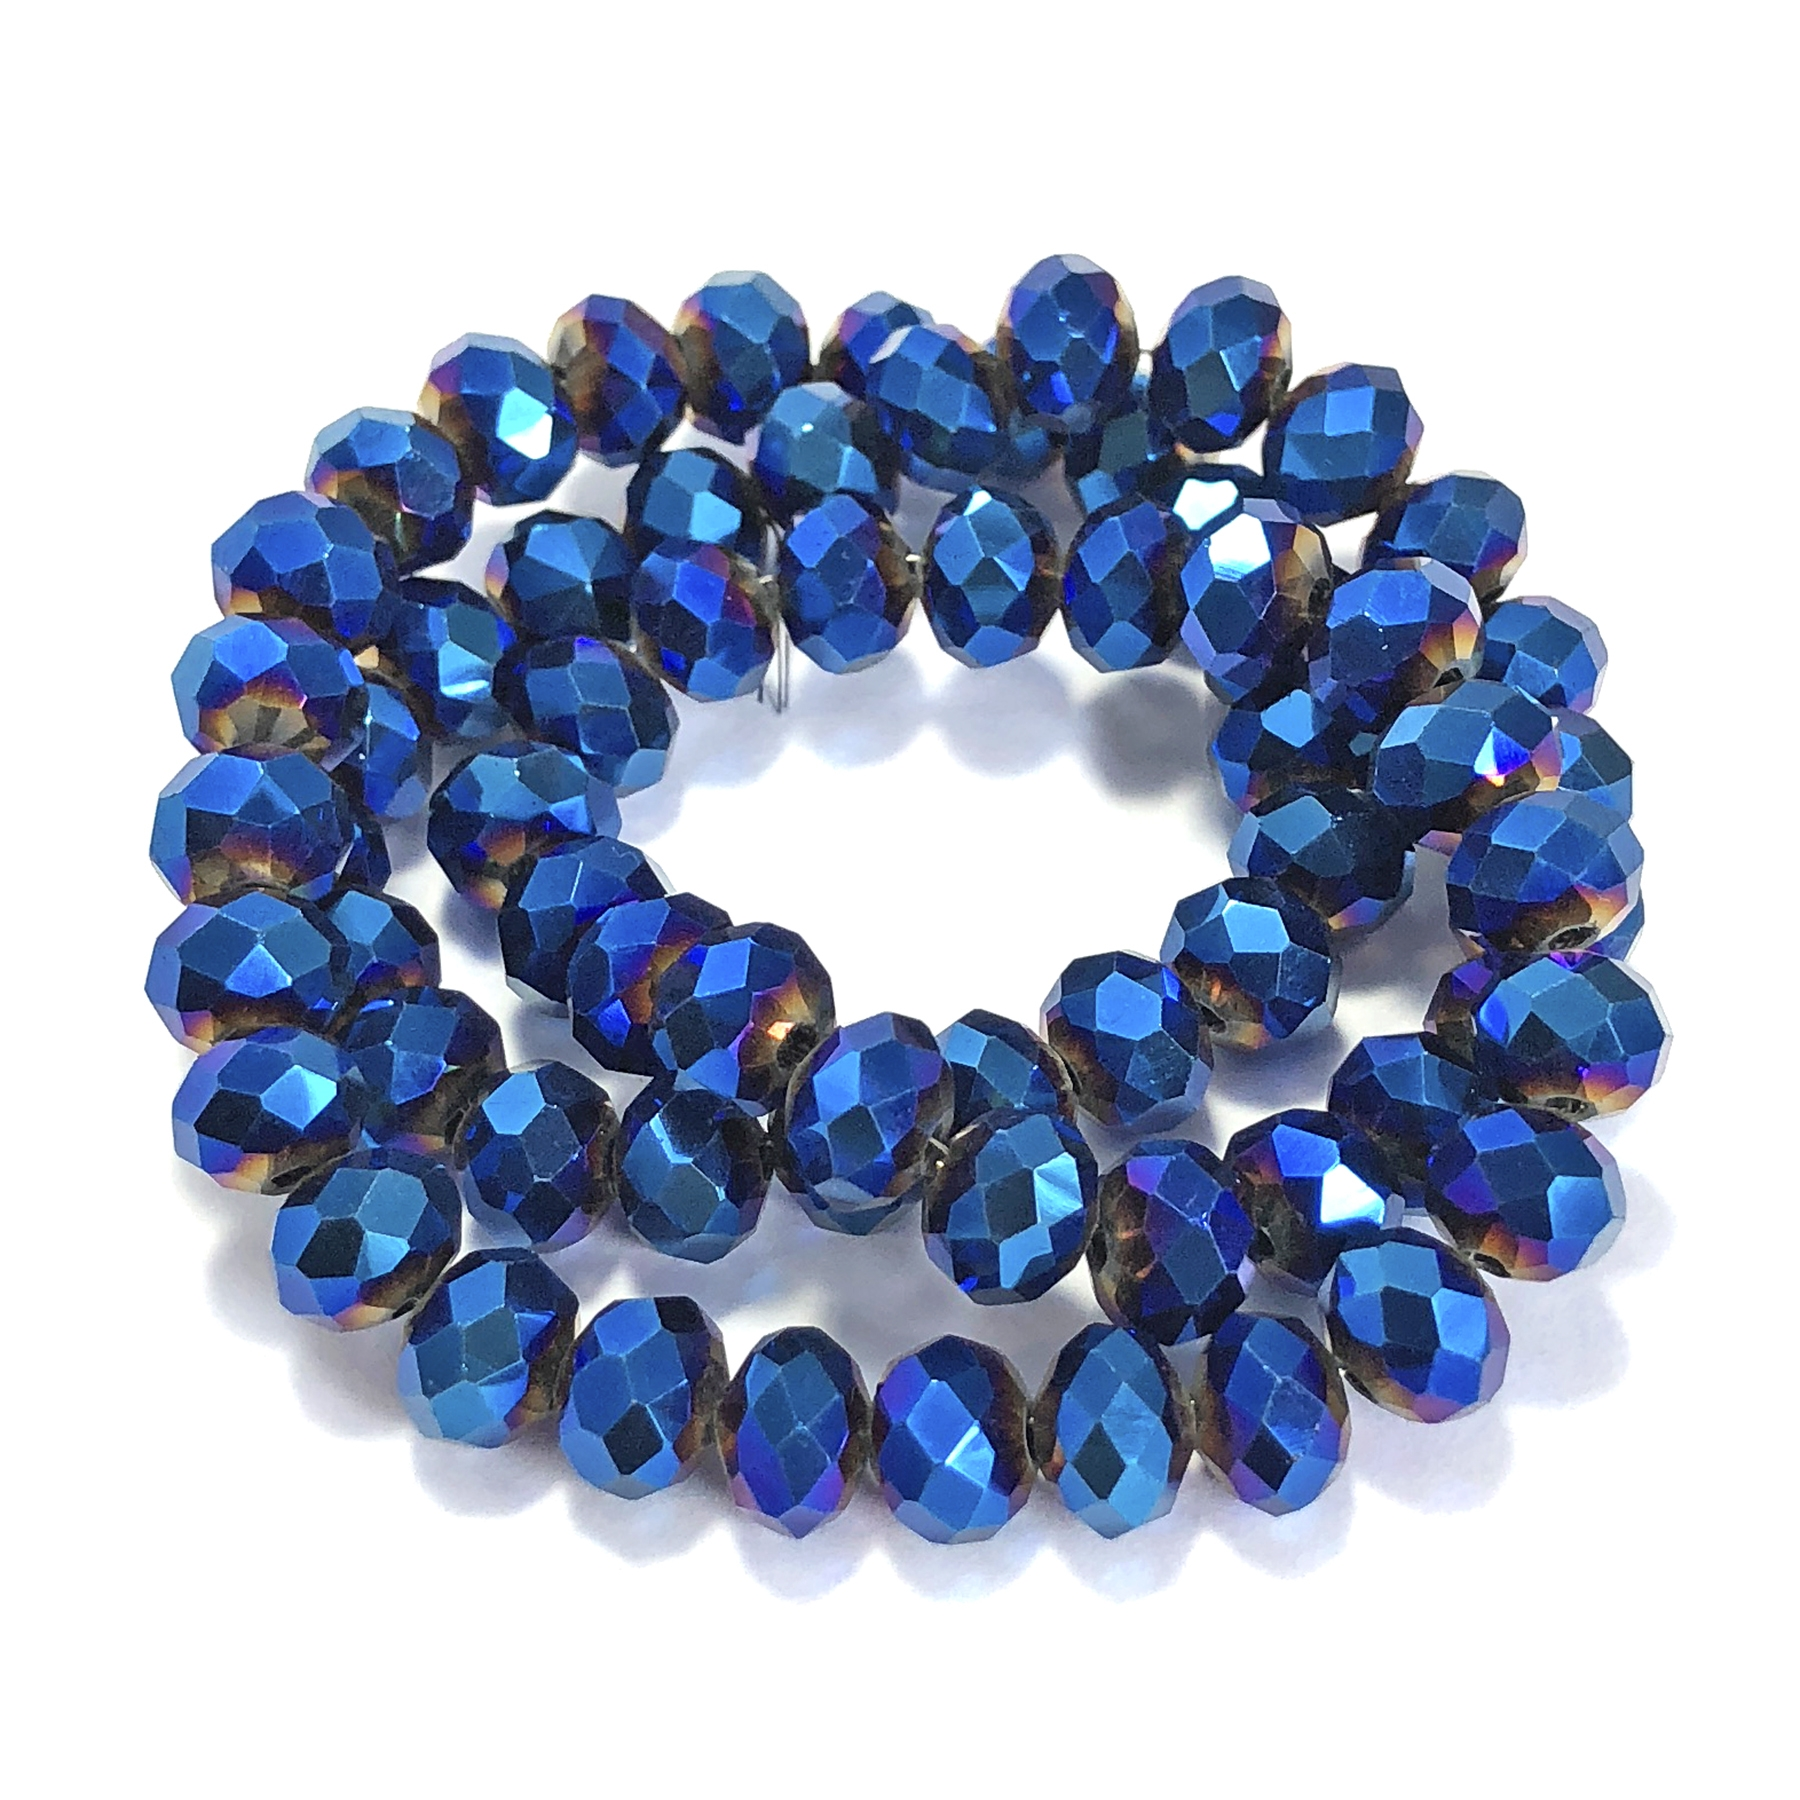 metallic cobalt rondelle beads, blue beads, rondelle beads, cobalt, faceted, glass beads, crystal glass, abacus beads, electroplate, metallic beads, 8x6mm, jewelry making beading supplies, jewelry supplies, vintage supplies, glass blue beads, 09515